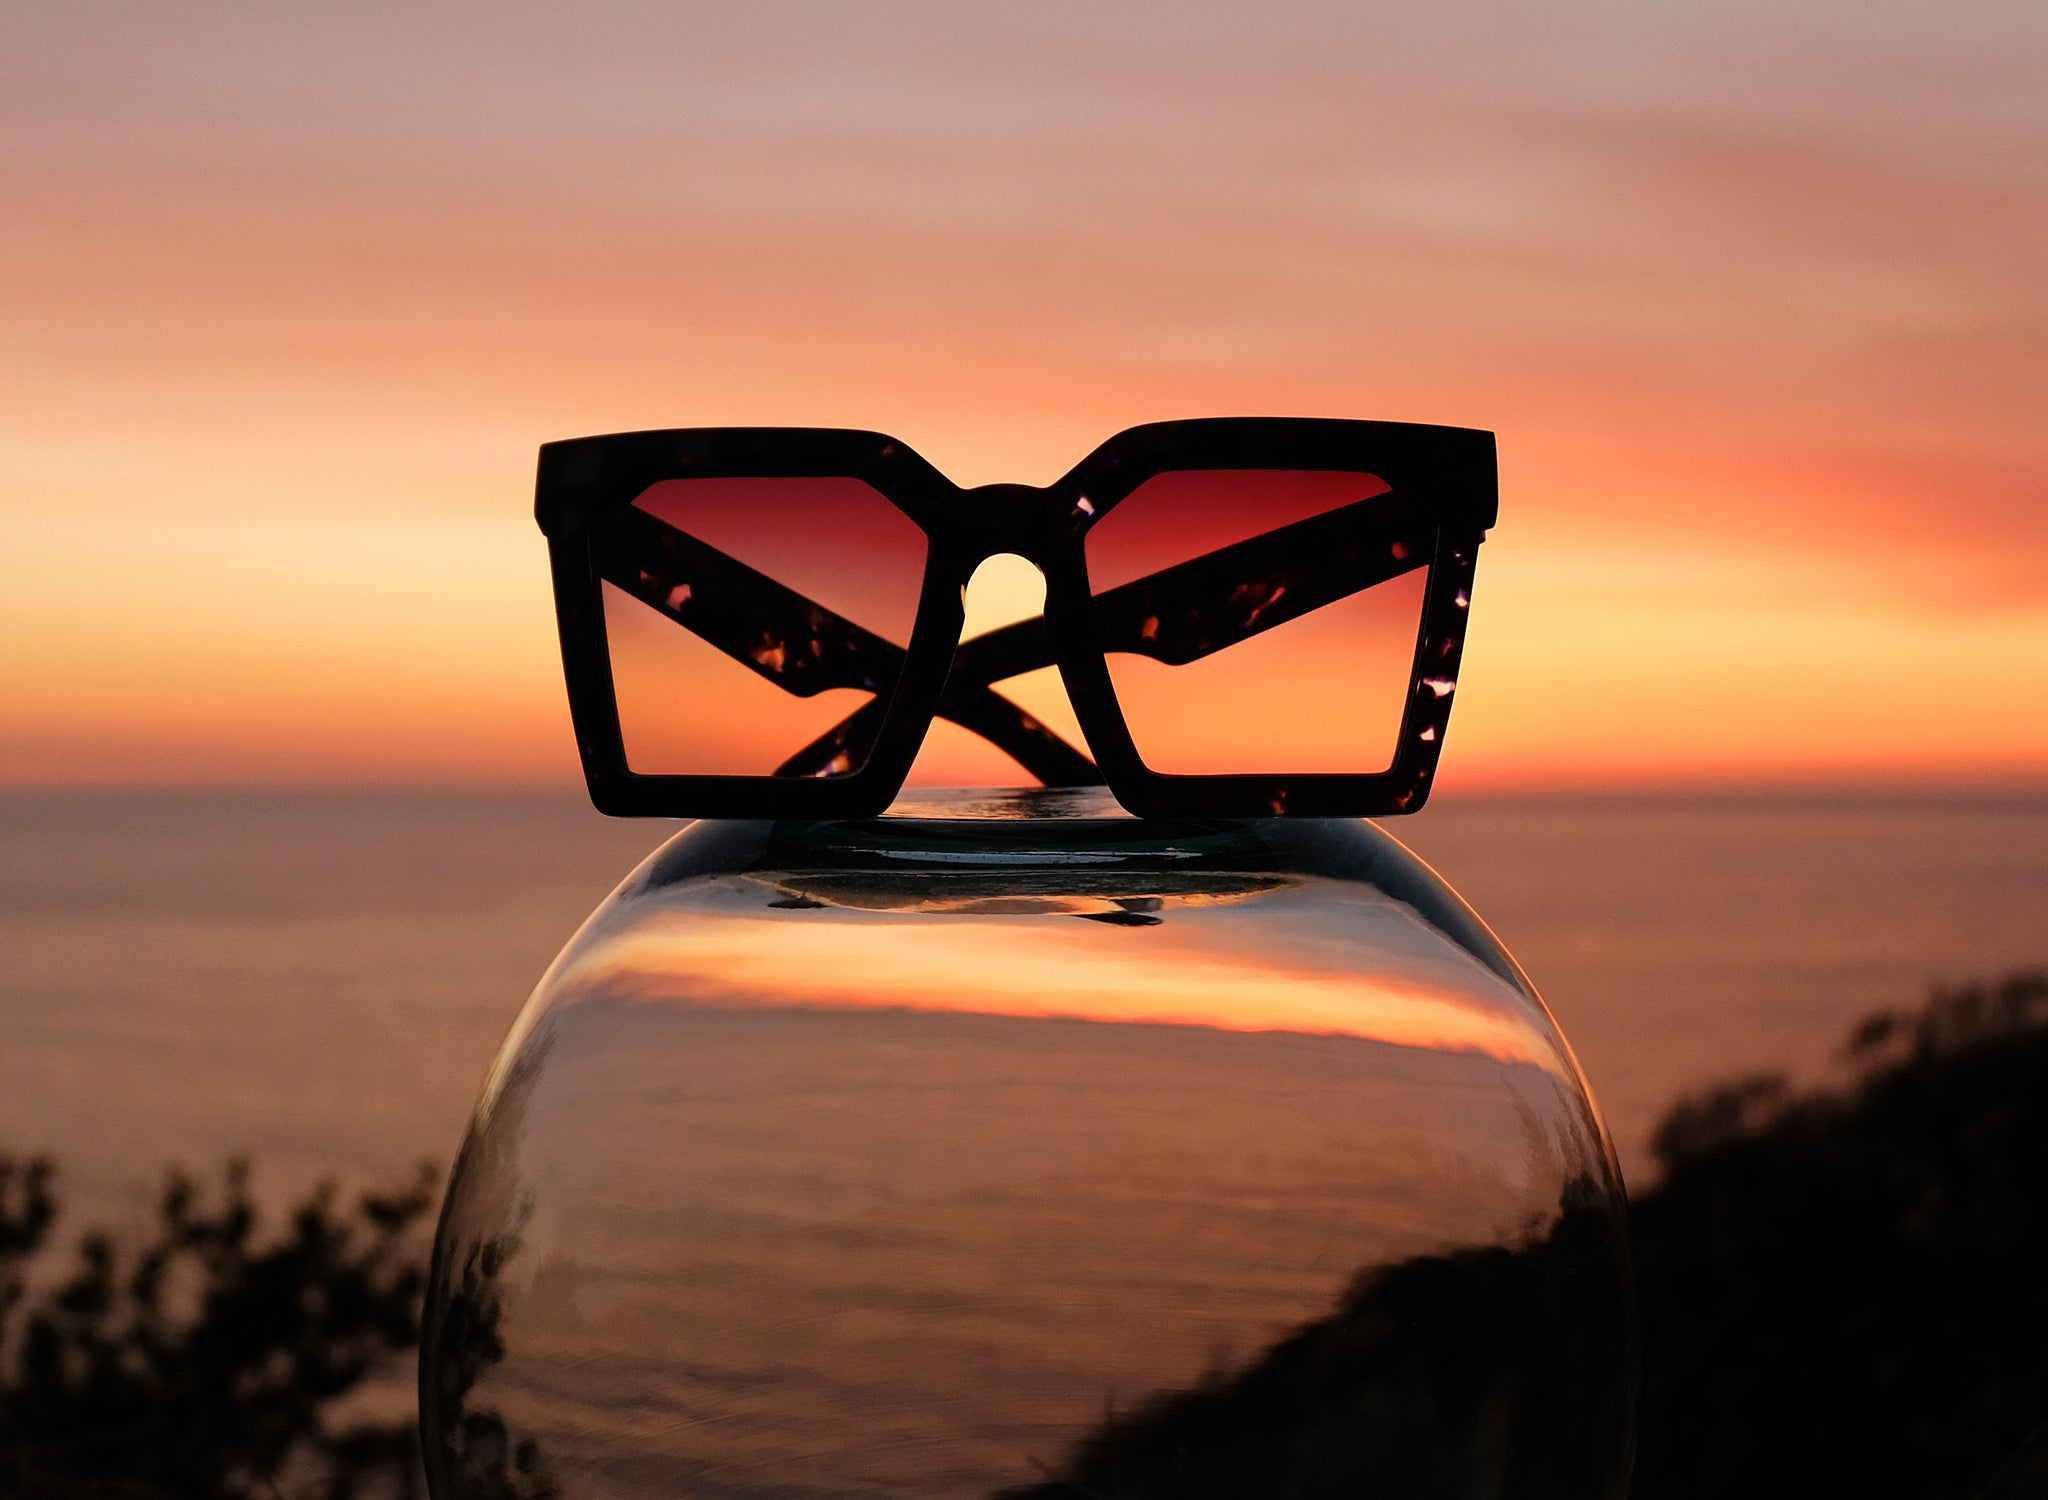 LAS ISLAS SQUARE OVERSIZED SUNGLASSES, STILL LIFE PHOTOGRAPHY